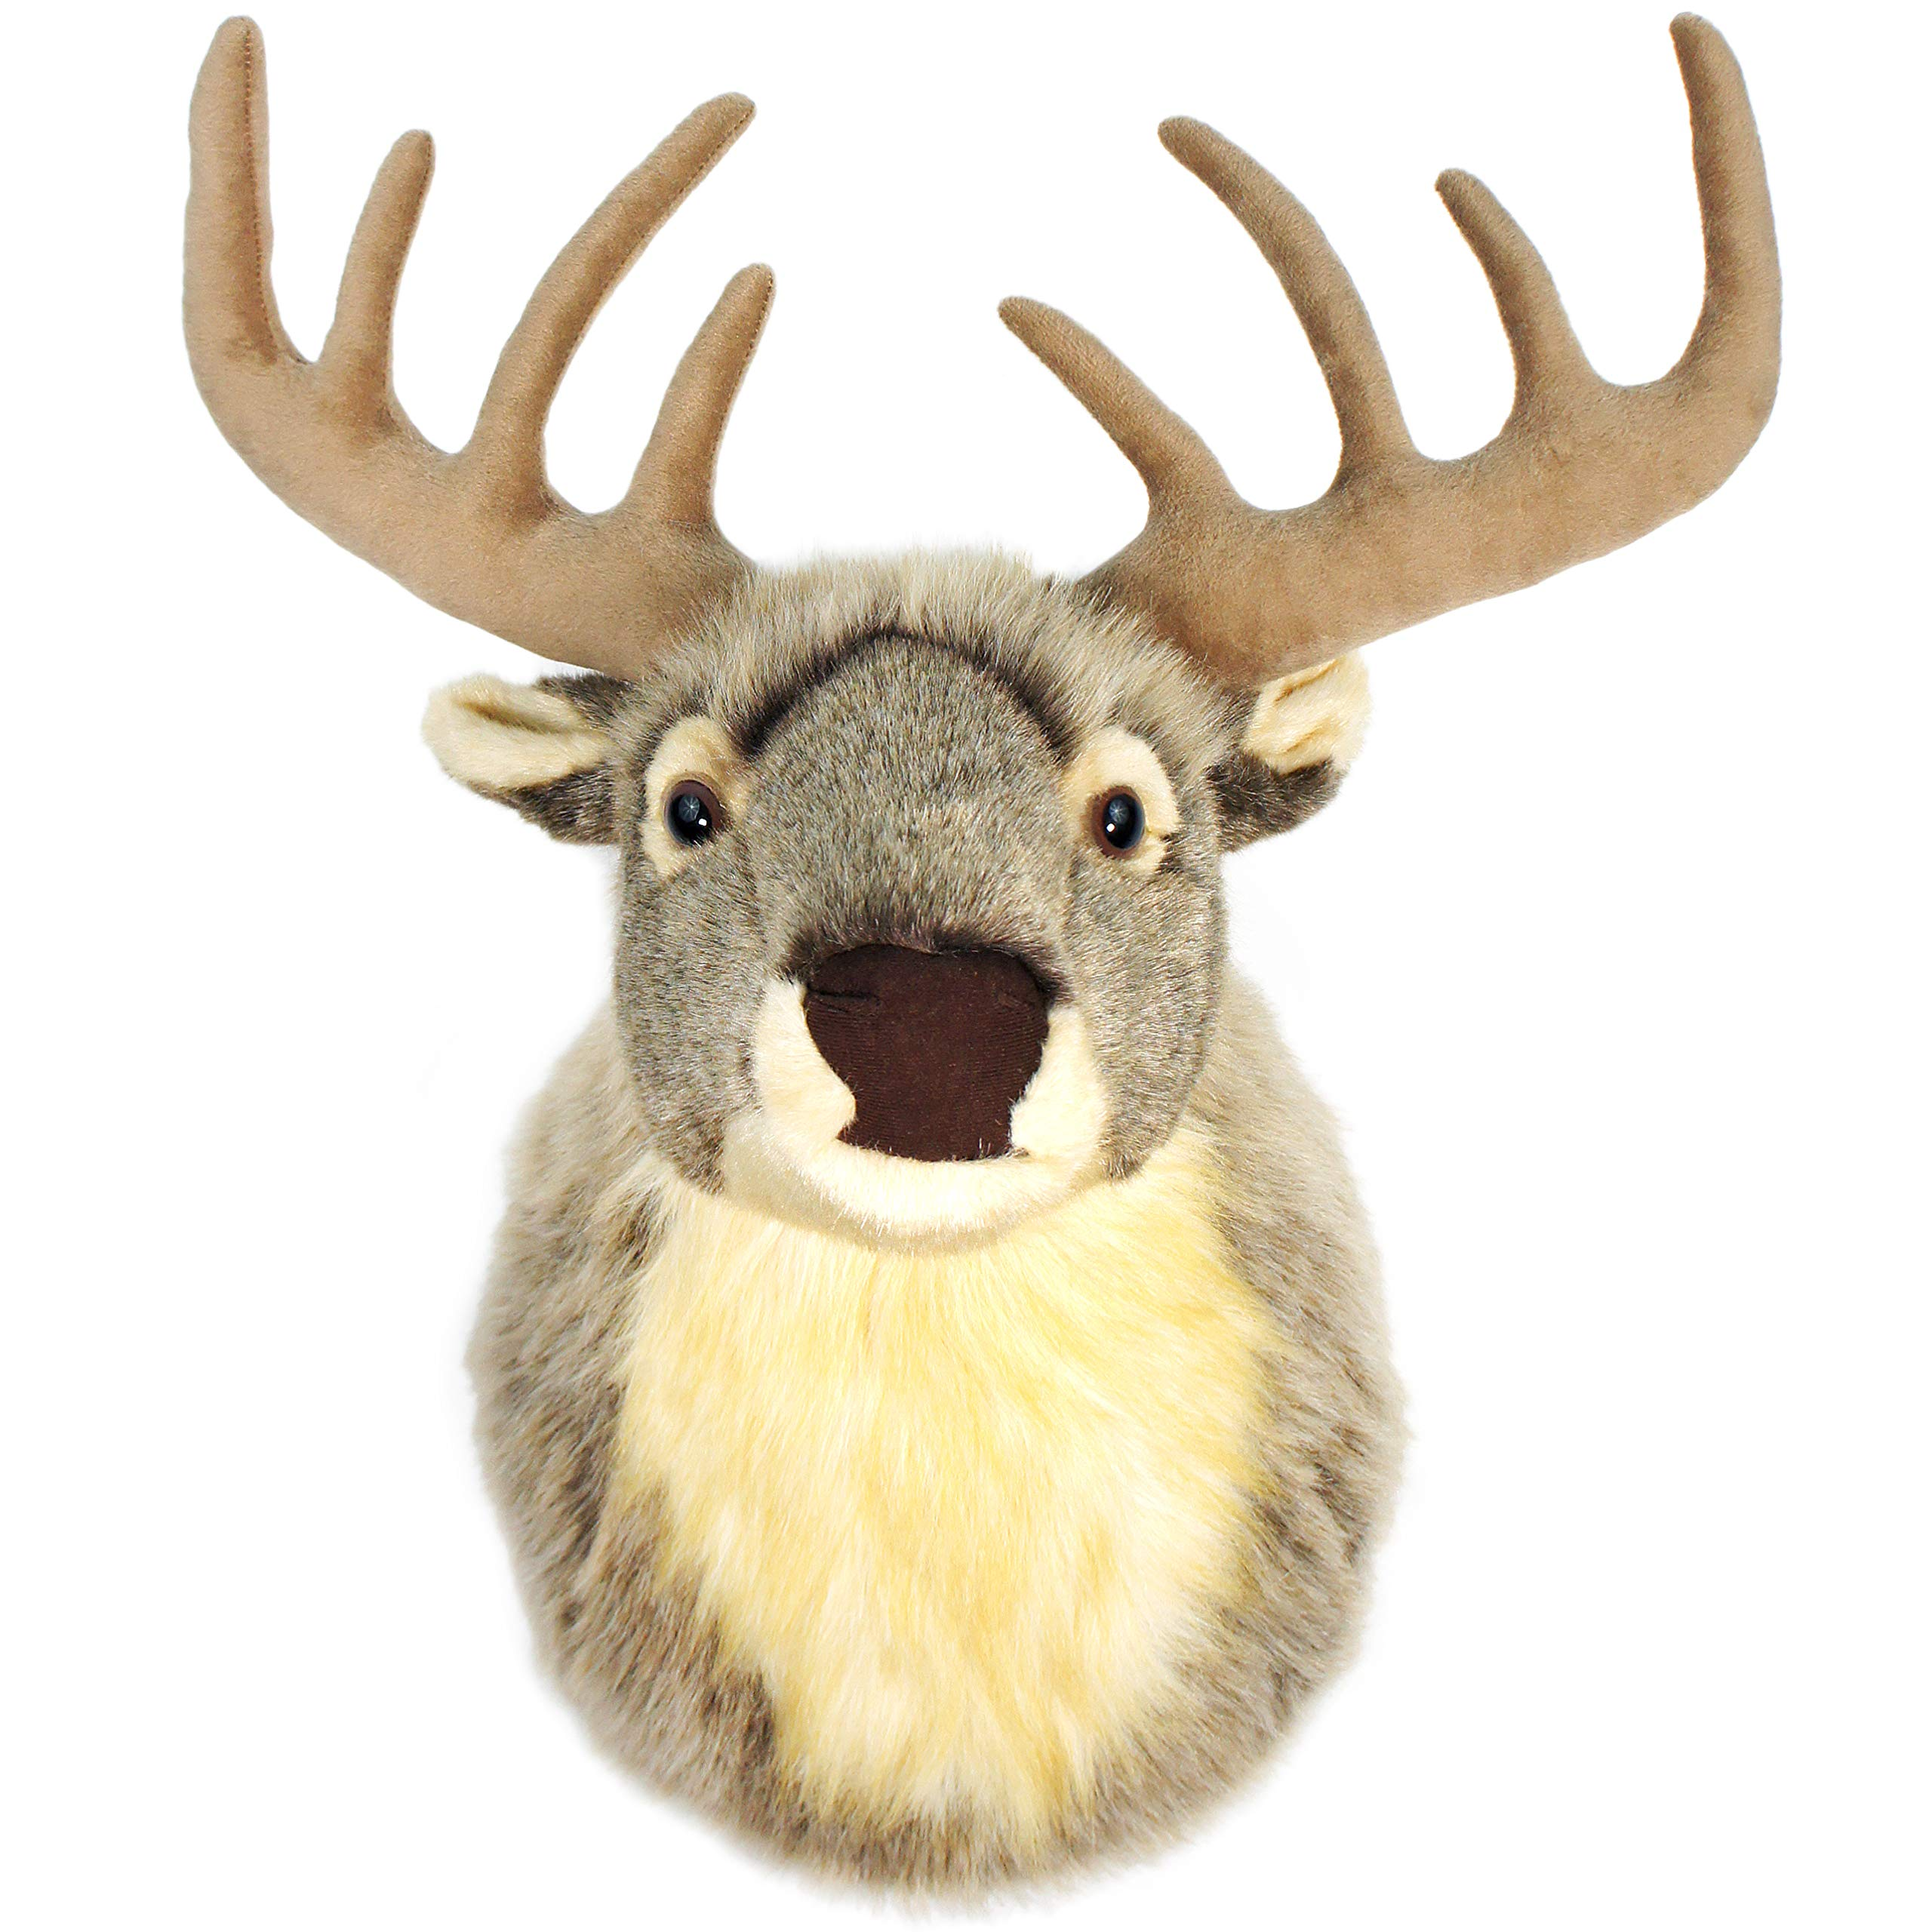 VIAHART Eldritch The Elk | 24 Inch Stag (with Antlers) Stuffed Animal Plush Deer Head Trophy Wall Mount Buck Bust | Shipping from Texas | by Tiger Tale Toys by VIAHART